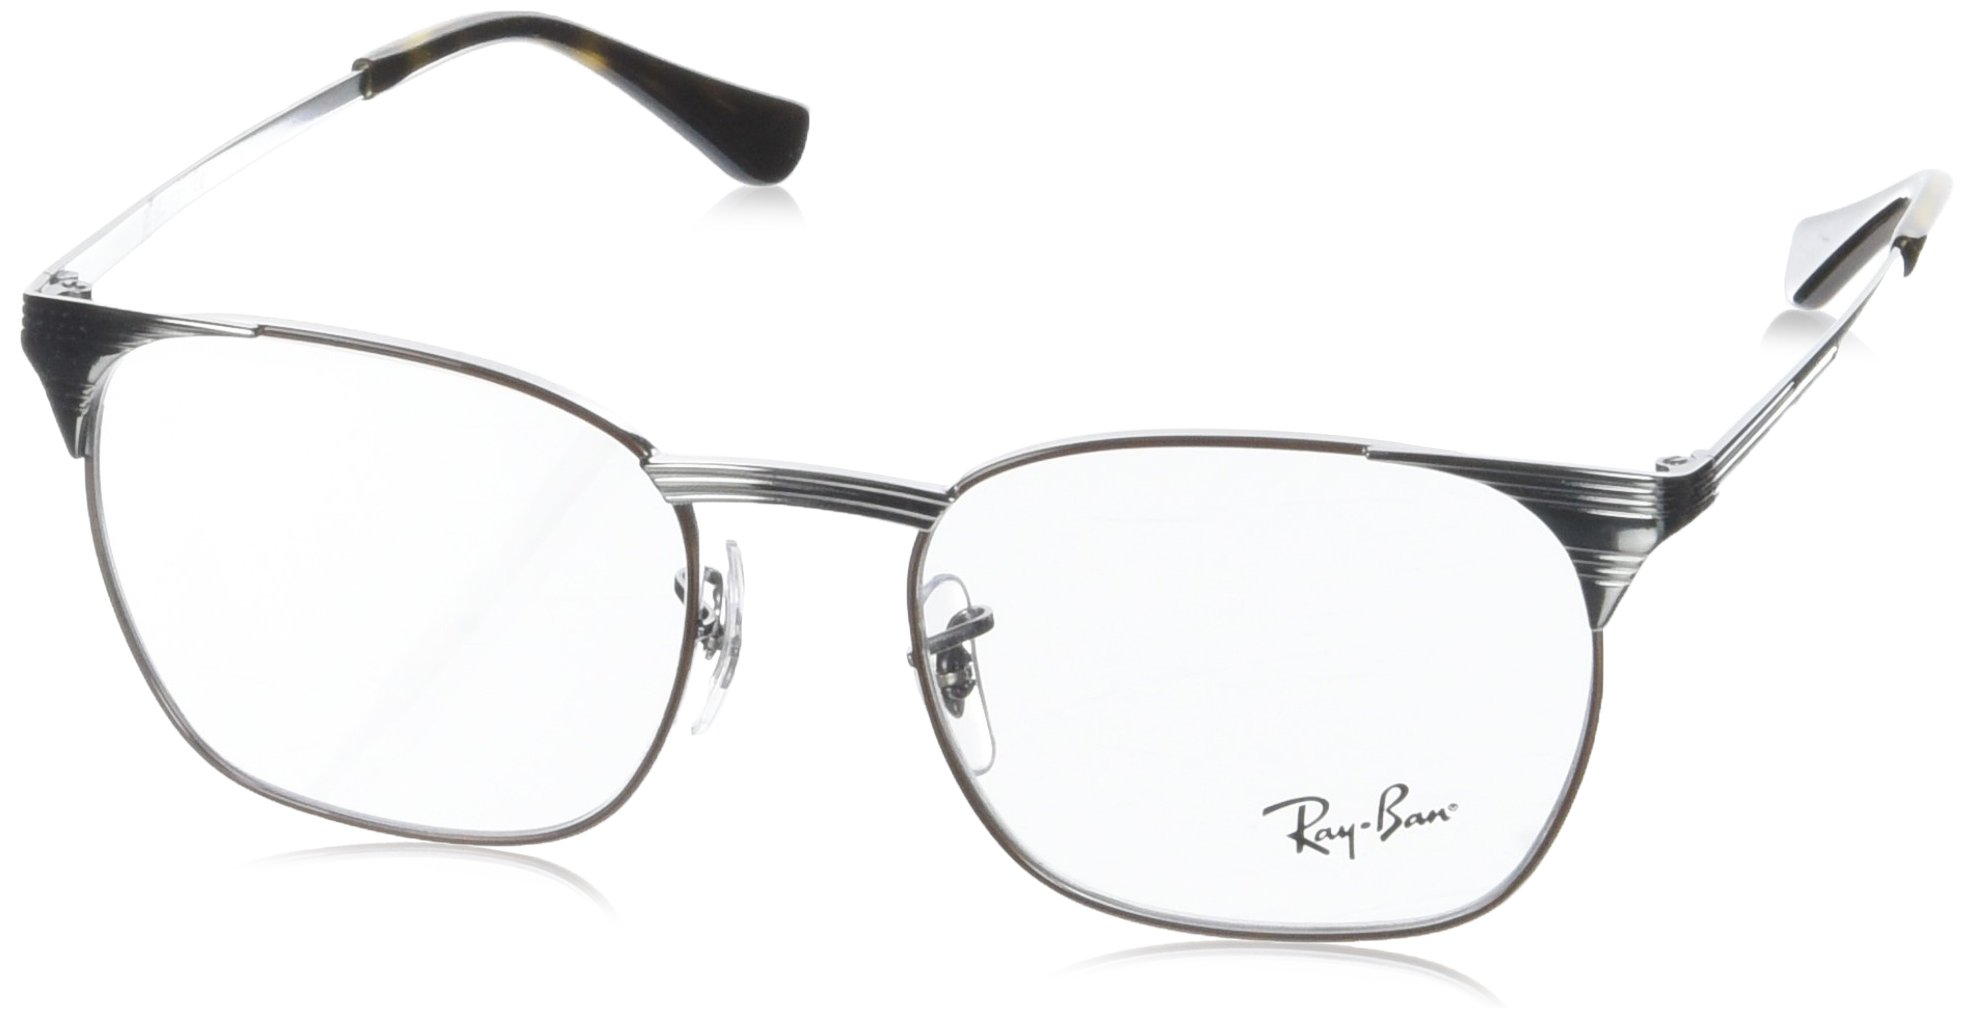 Ray-Ban Unisex 0RX6386 53mm Gunmetal/Brown One Size